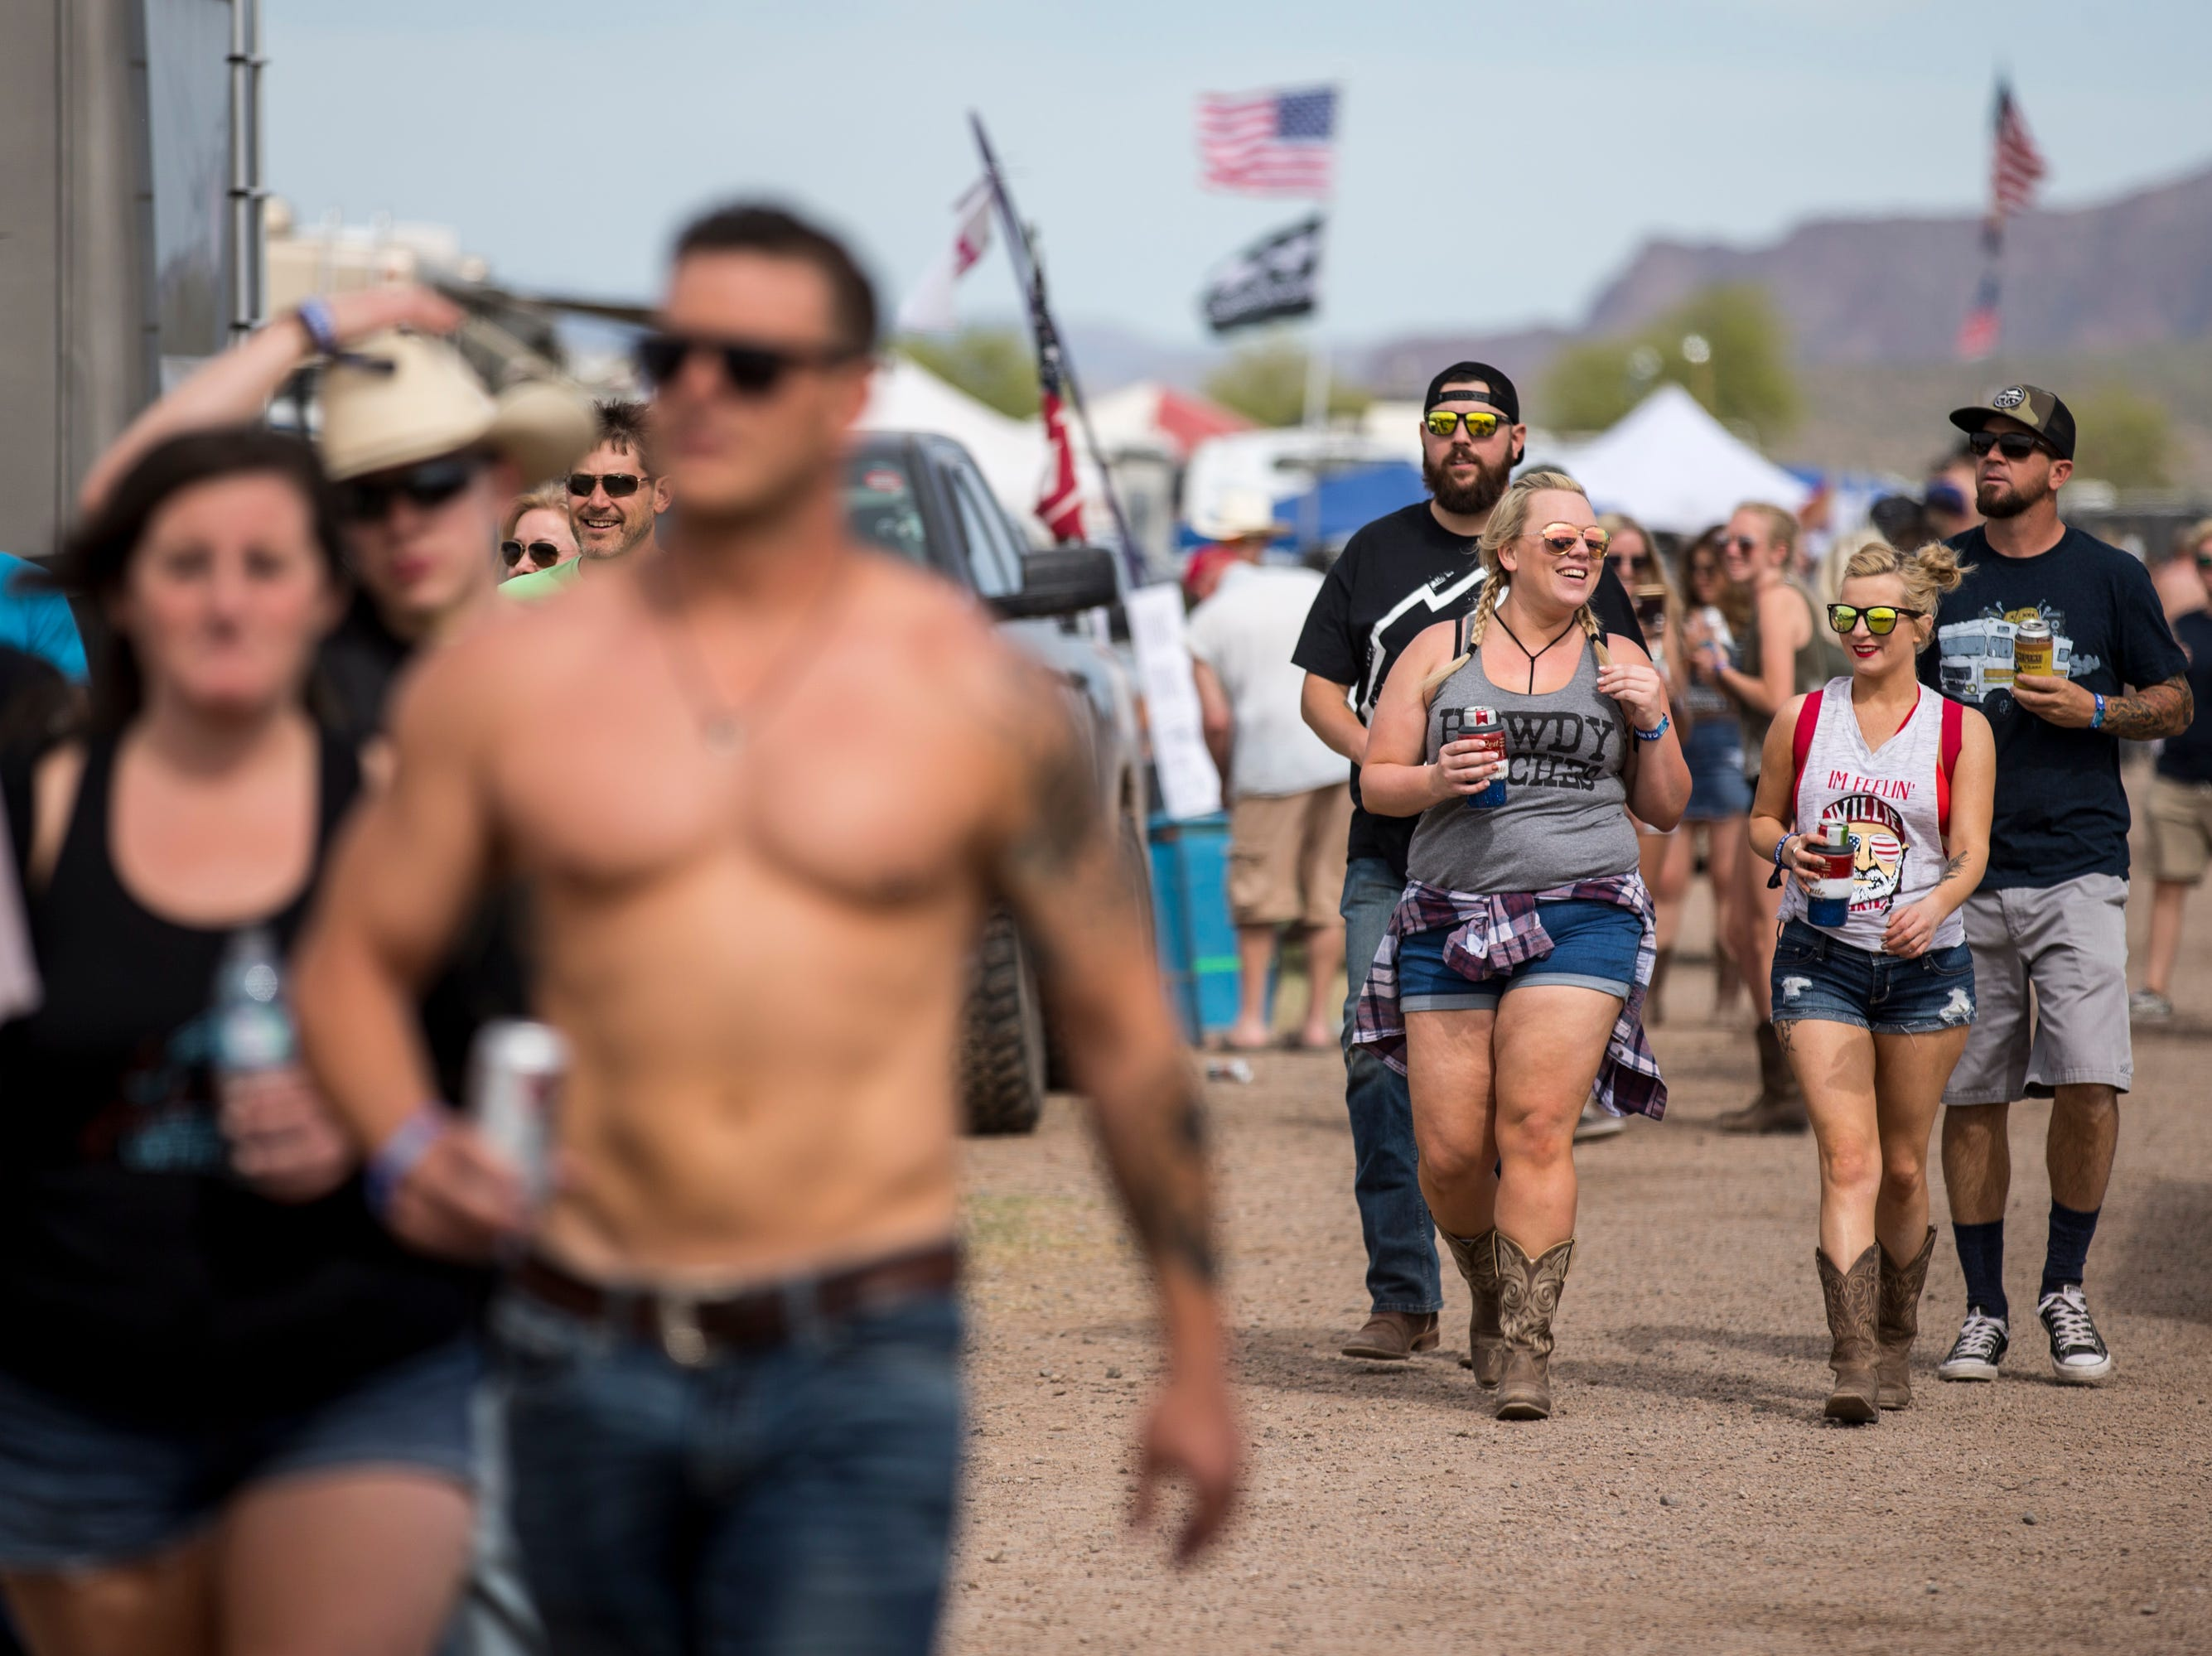 Festival-goers walk through the Crazy Coyote campsite on April 11, 2019, during Day 1 of Country Thunder Arizona in Florence.